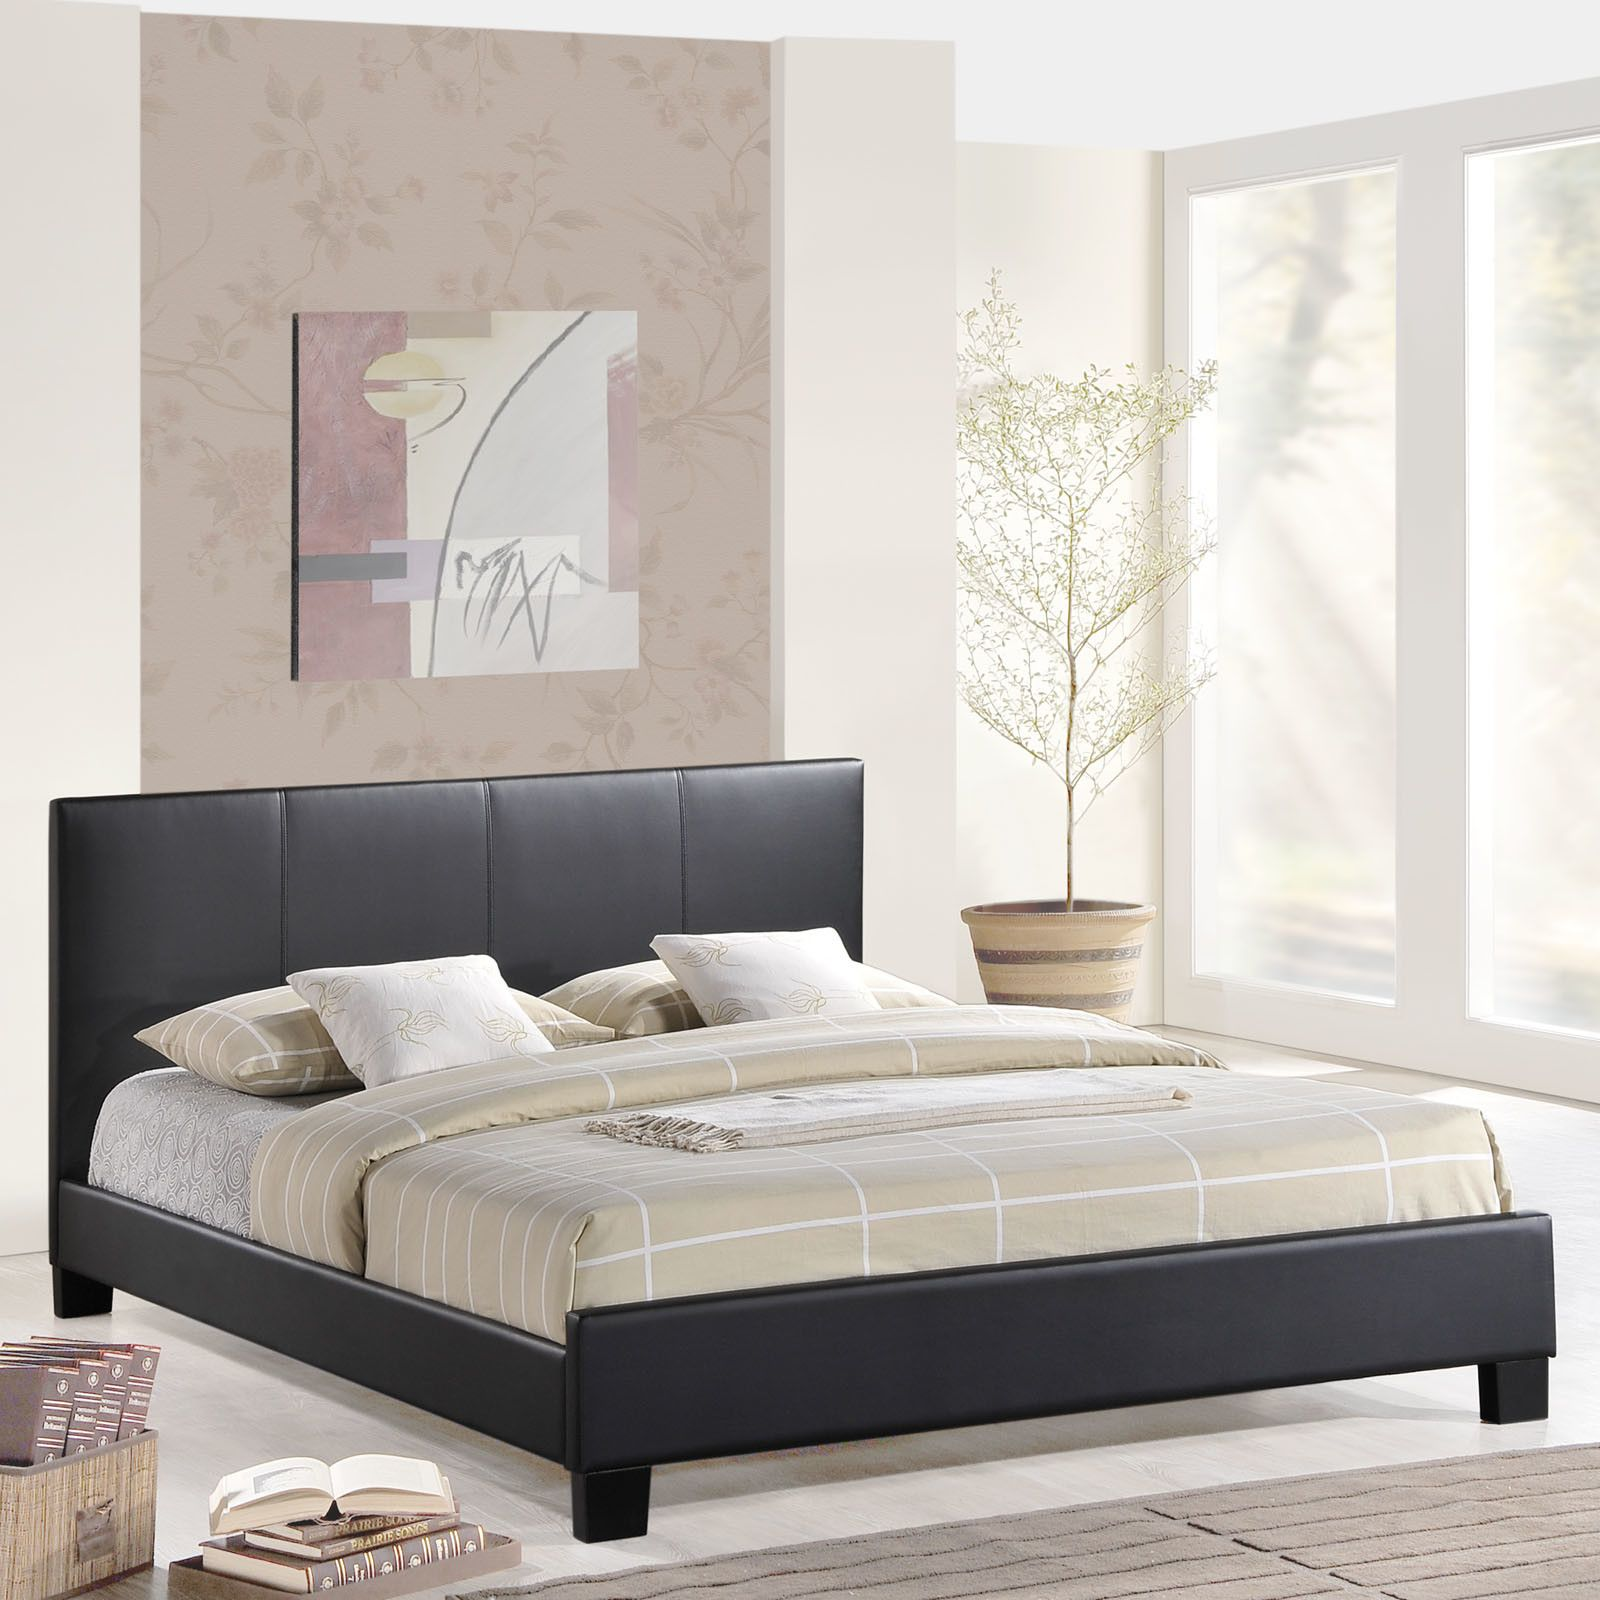 Alex Upholstered Platform Bed Upholstered platform bed